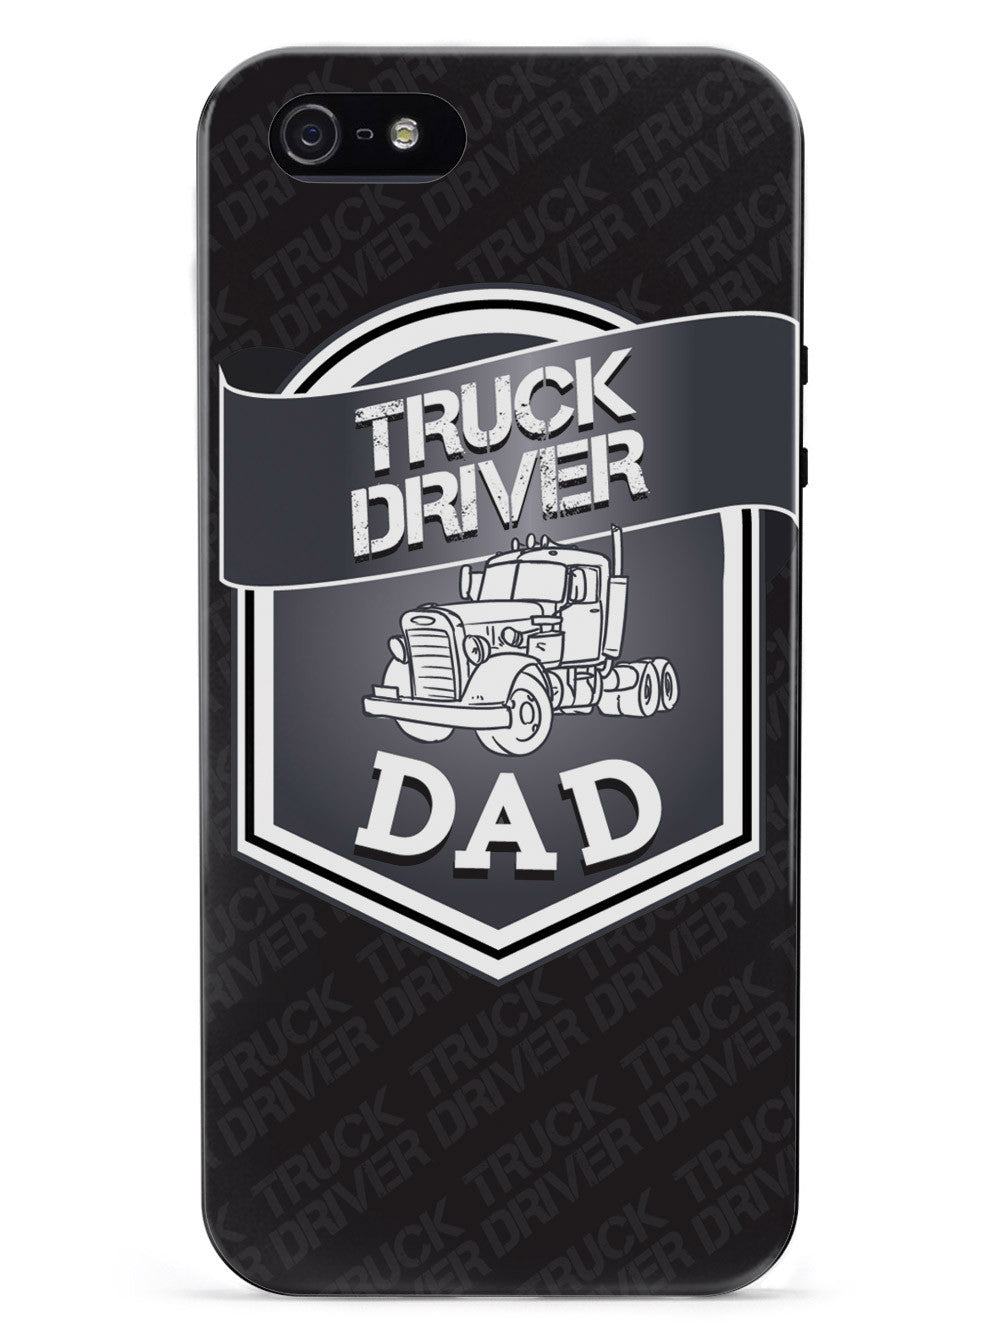 Truck Driver Dad Case